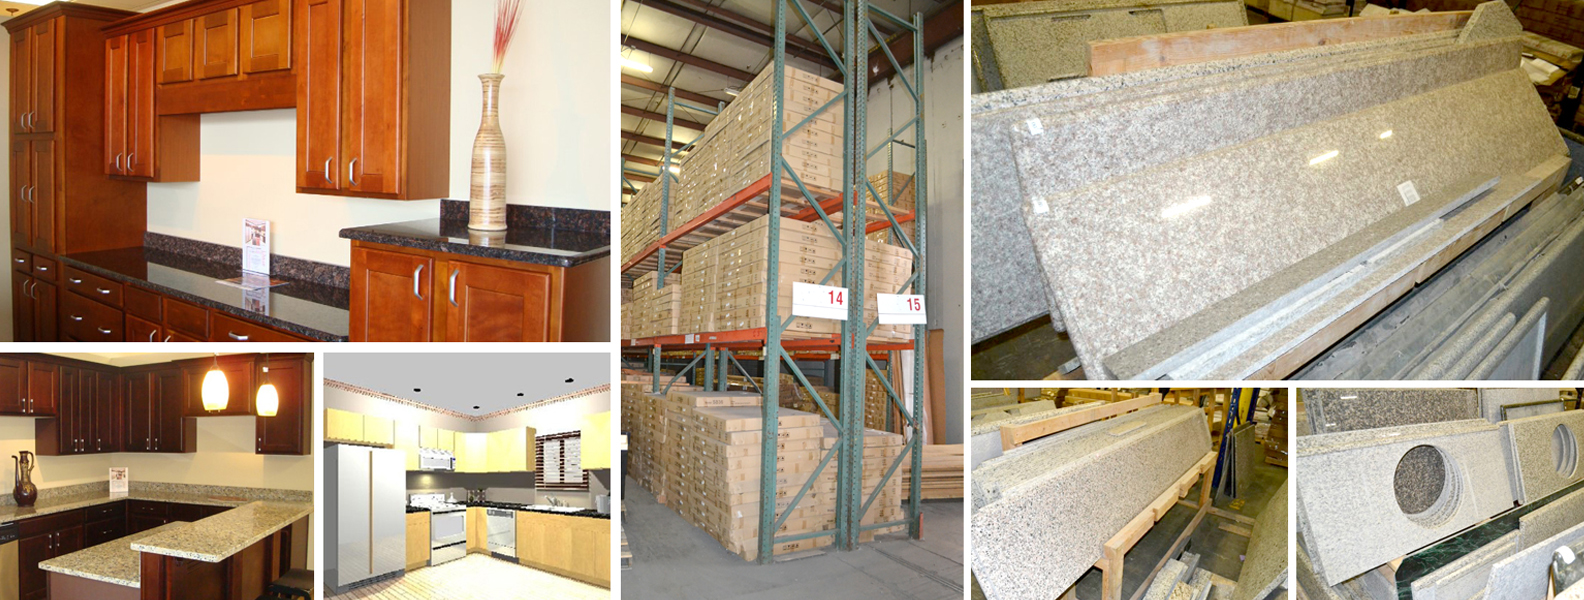 Cabinet, Granite, Bulk, Liquidation, Nashville, Tennessee, Cabinets, Granite Countertops, Kitchen, Remodel, Builders, Wholesale, Bulk, Lot, Liquidation